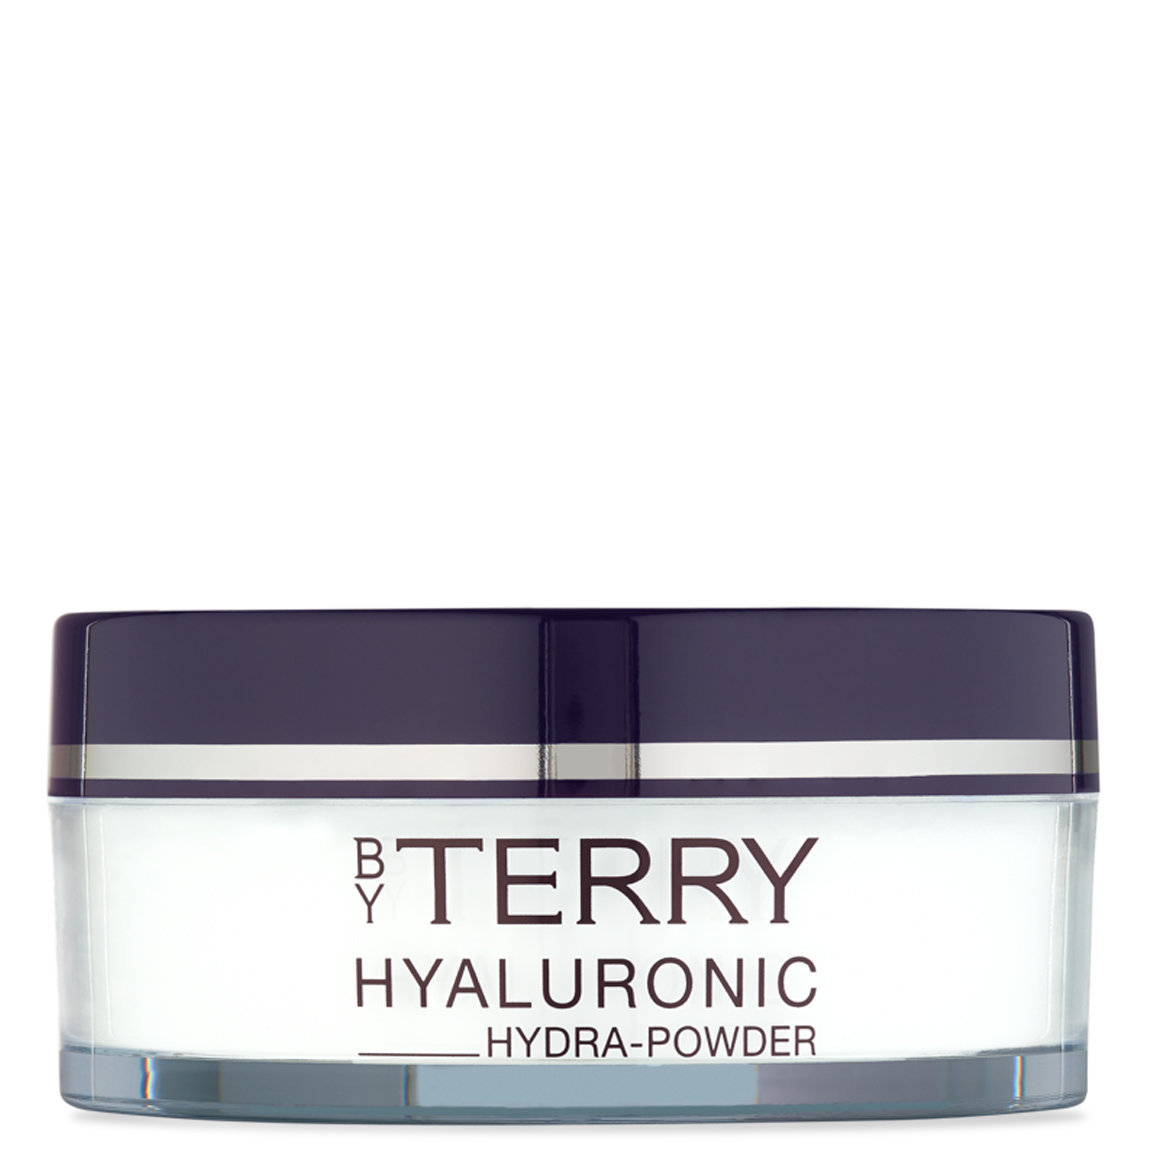 BY TERRY Hyaluronic Hydra-Powder 10 g alternative view 1 - product swatch.